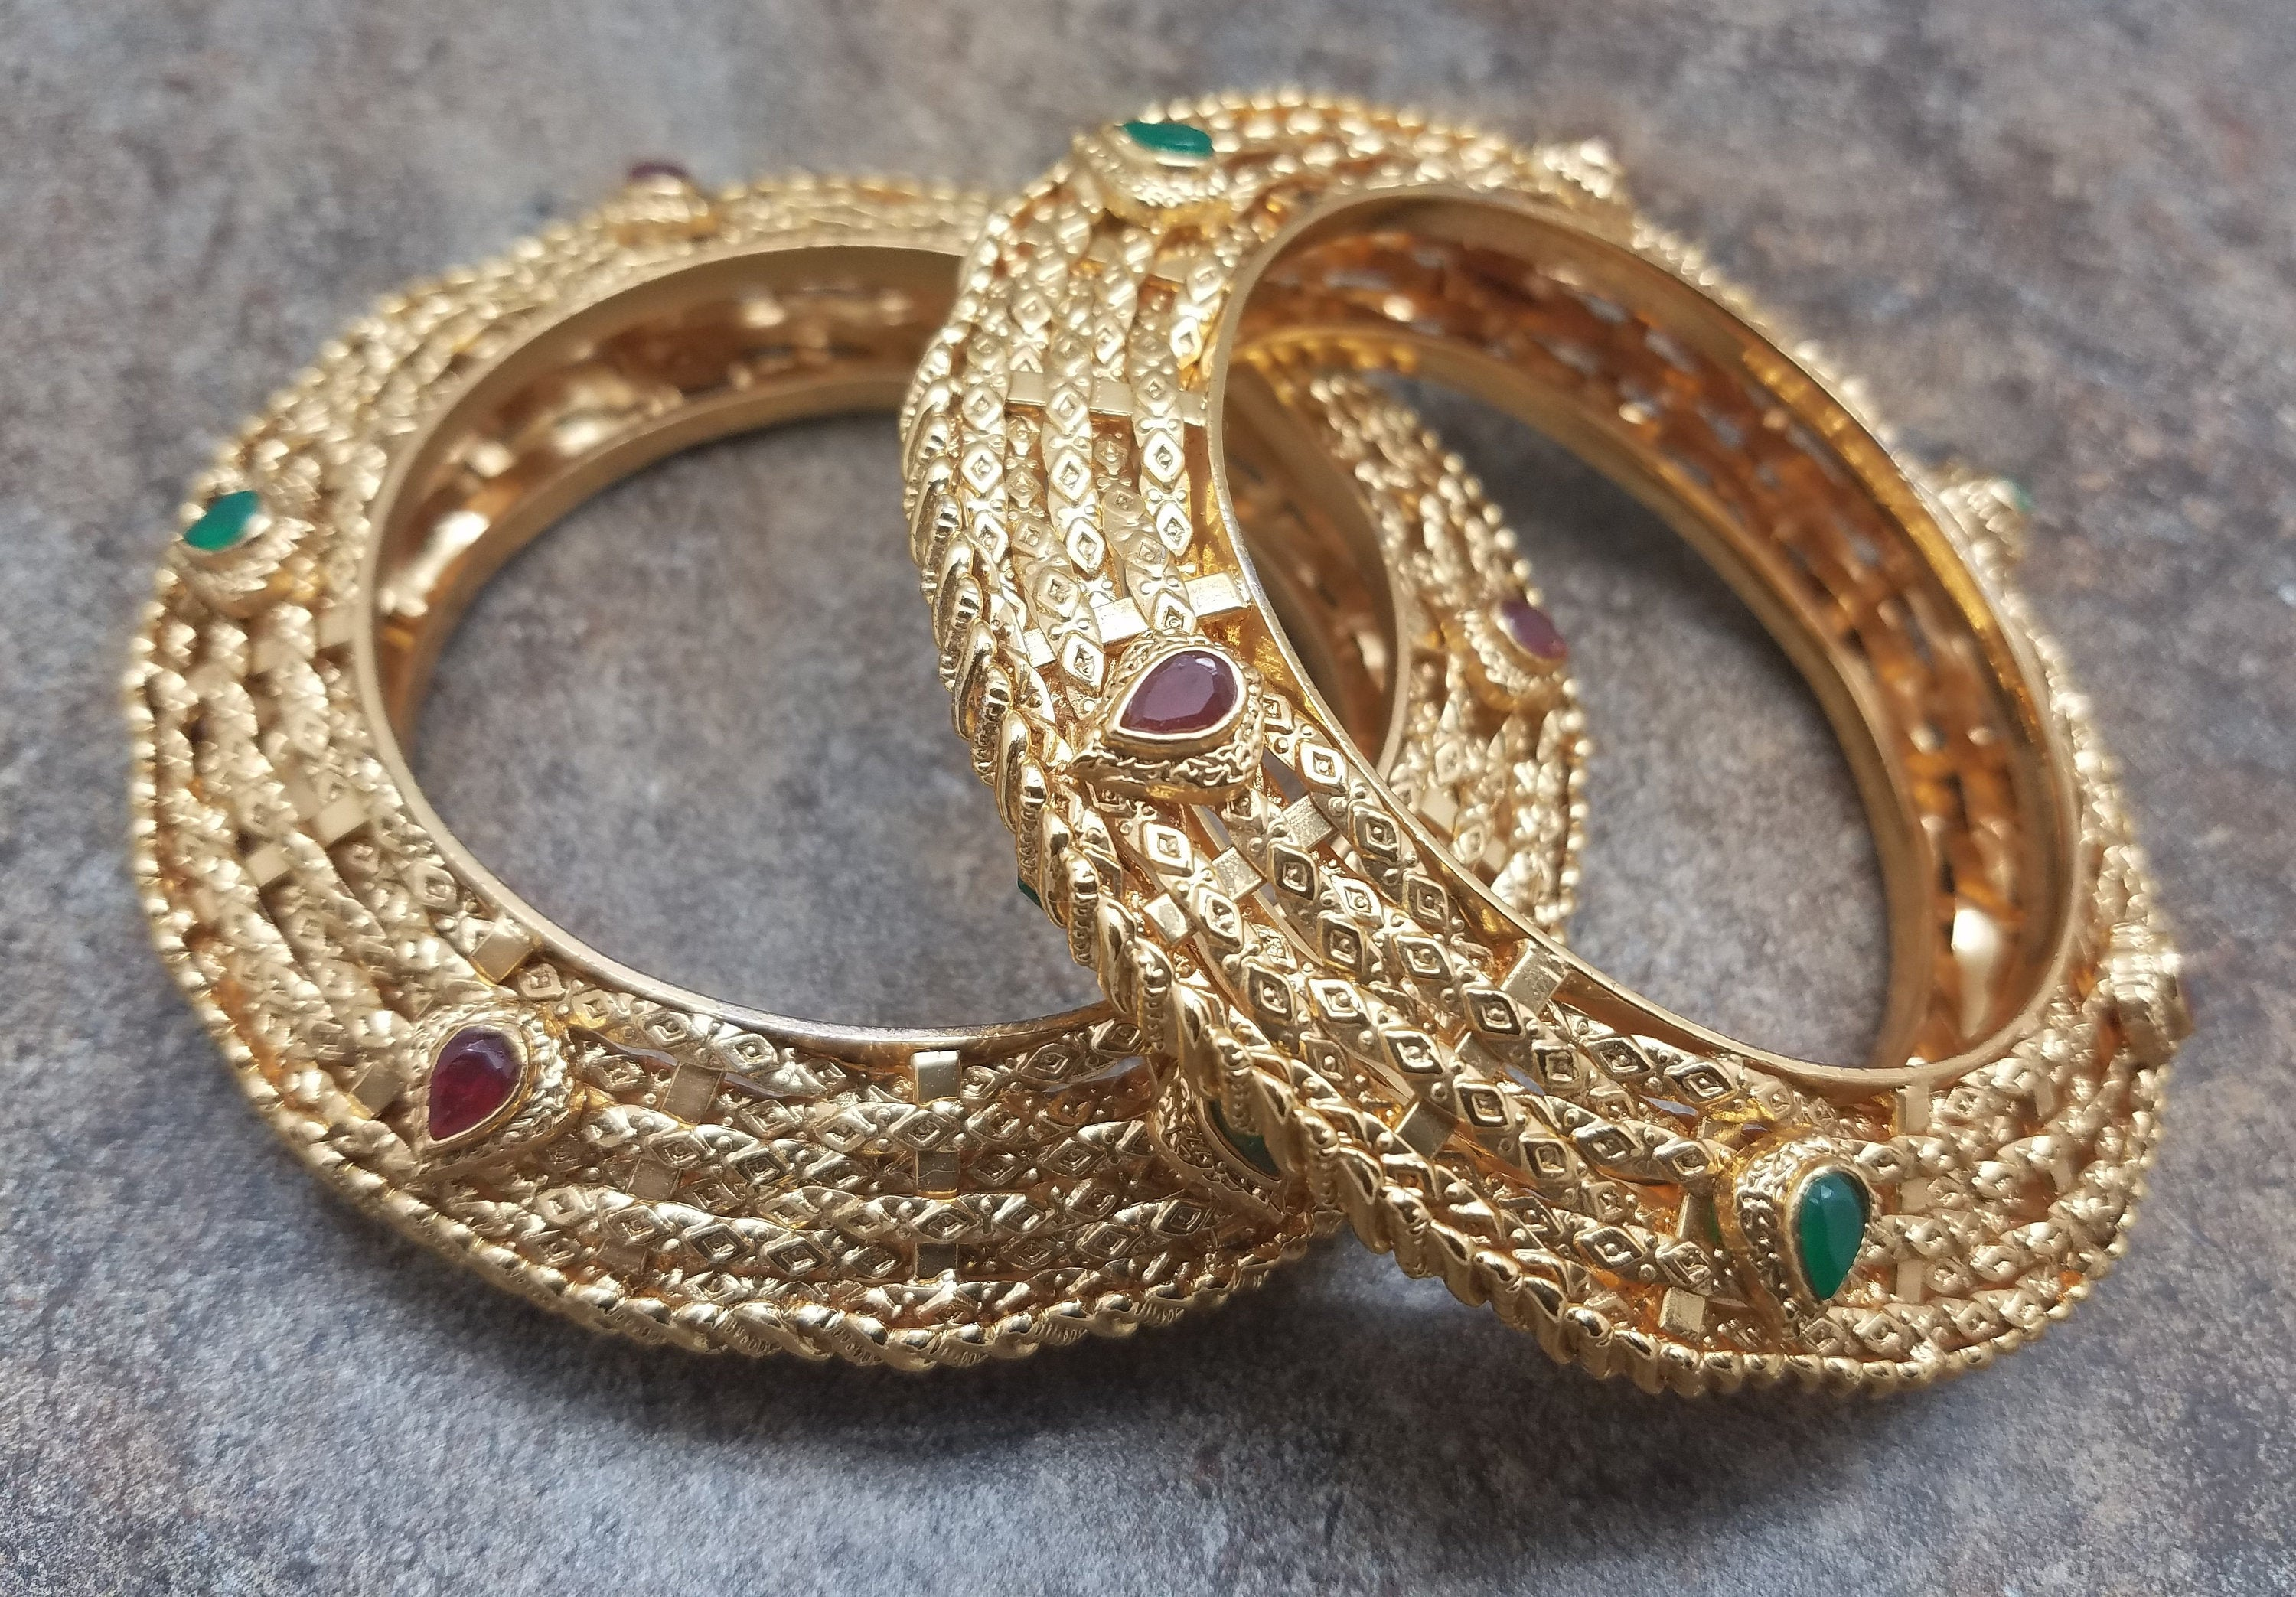 Pair of Bangles, Gold Filigree Kada w/ Faux Emerald, Ruby Stones, Size 2/8